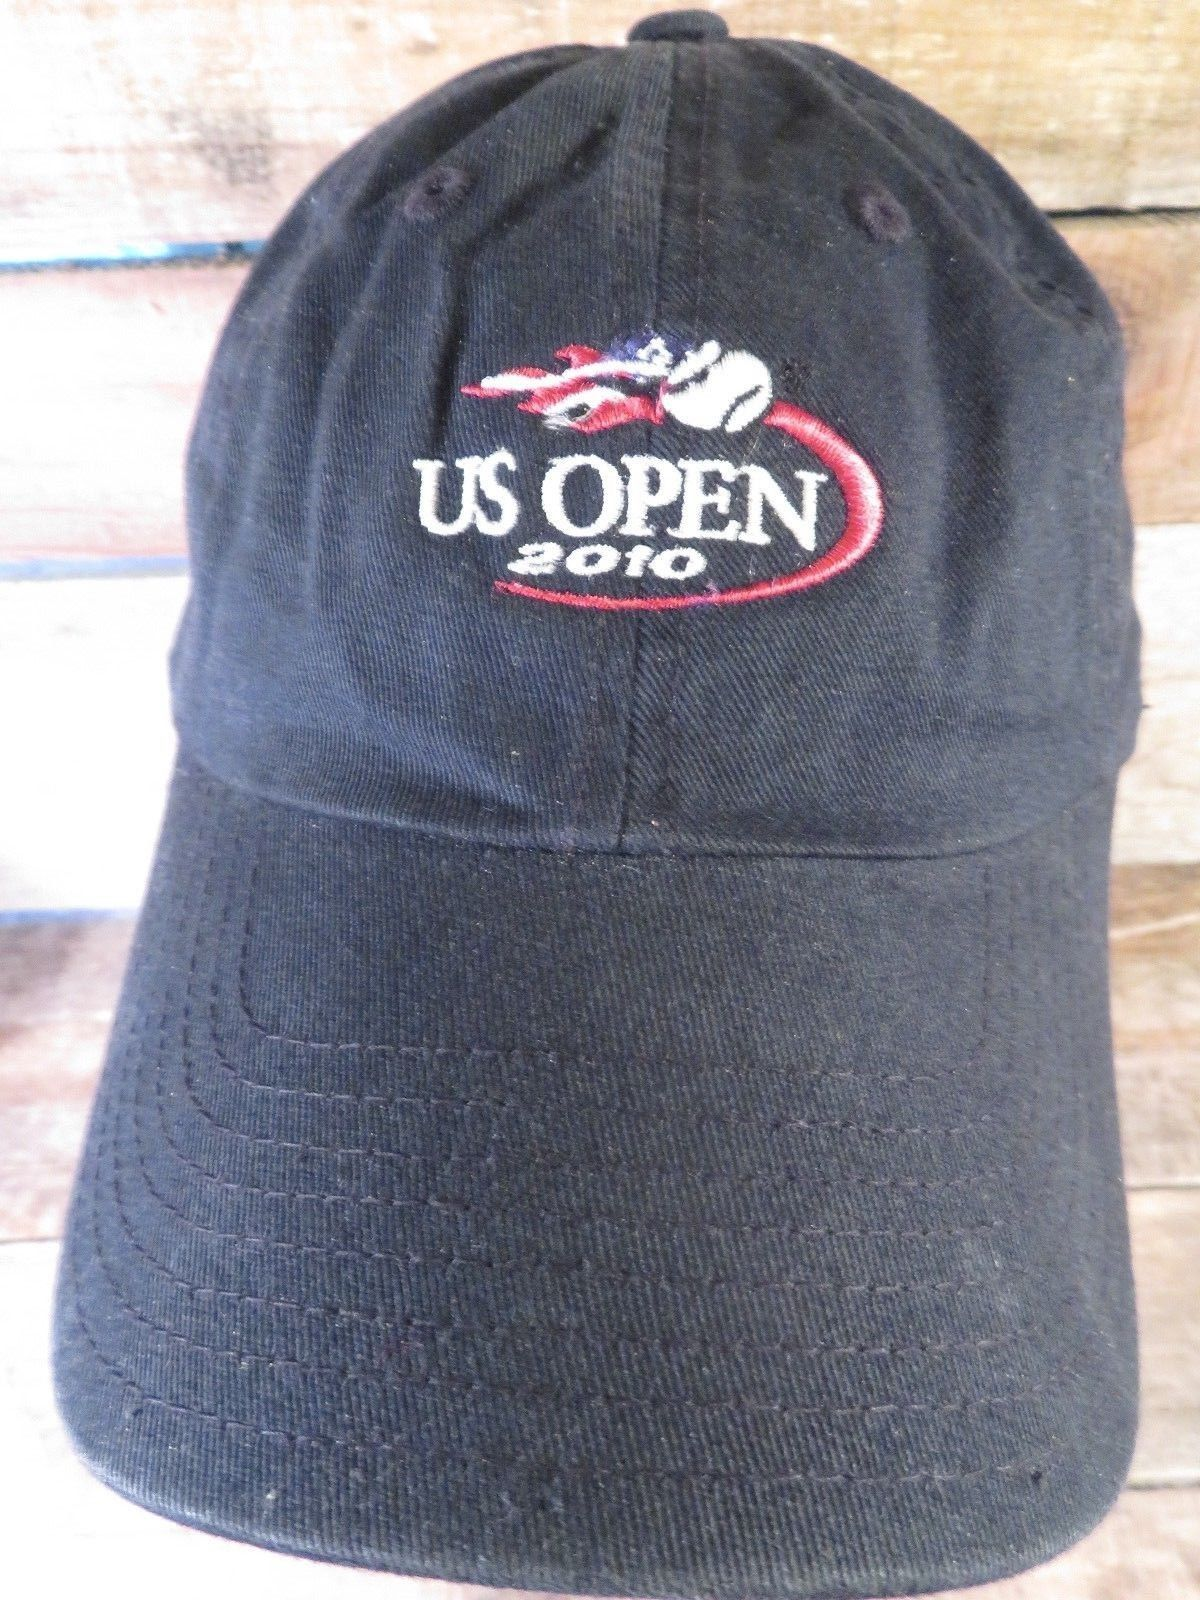 f196d313f8a42 US OPEN 2010 American Needle Adult Cap Hat and 50 similar items